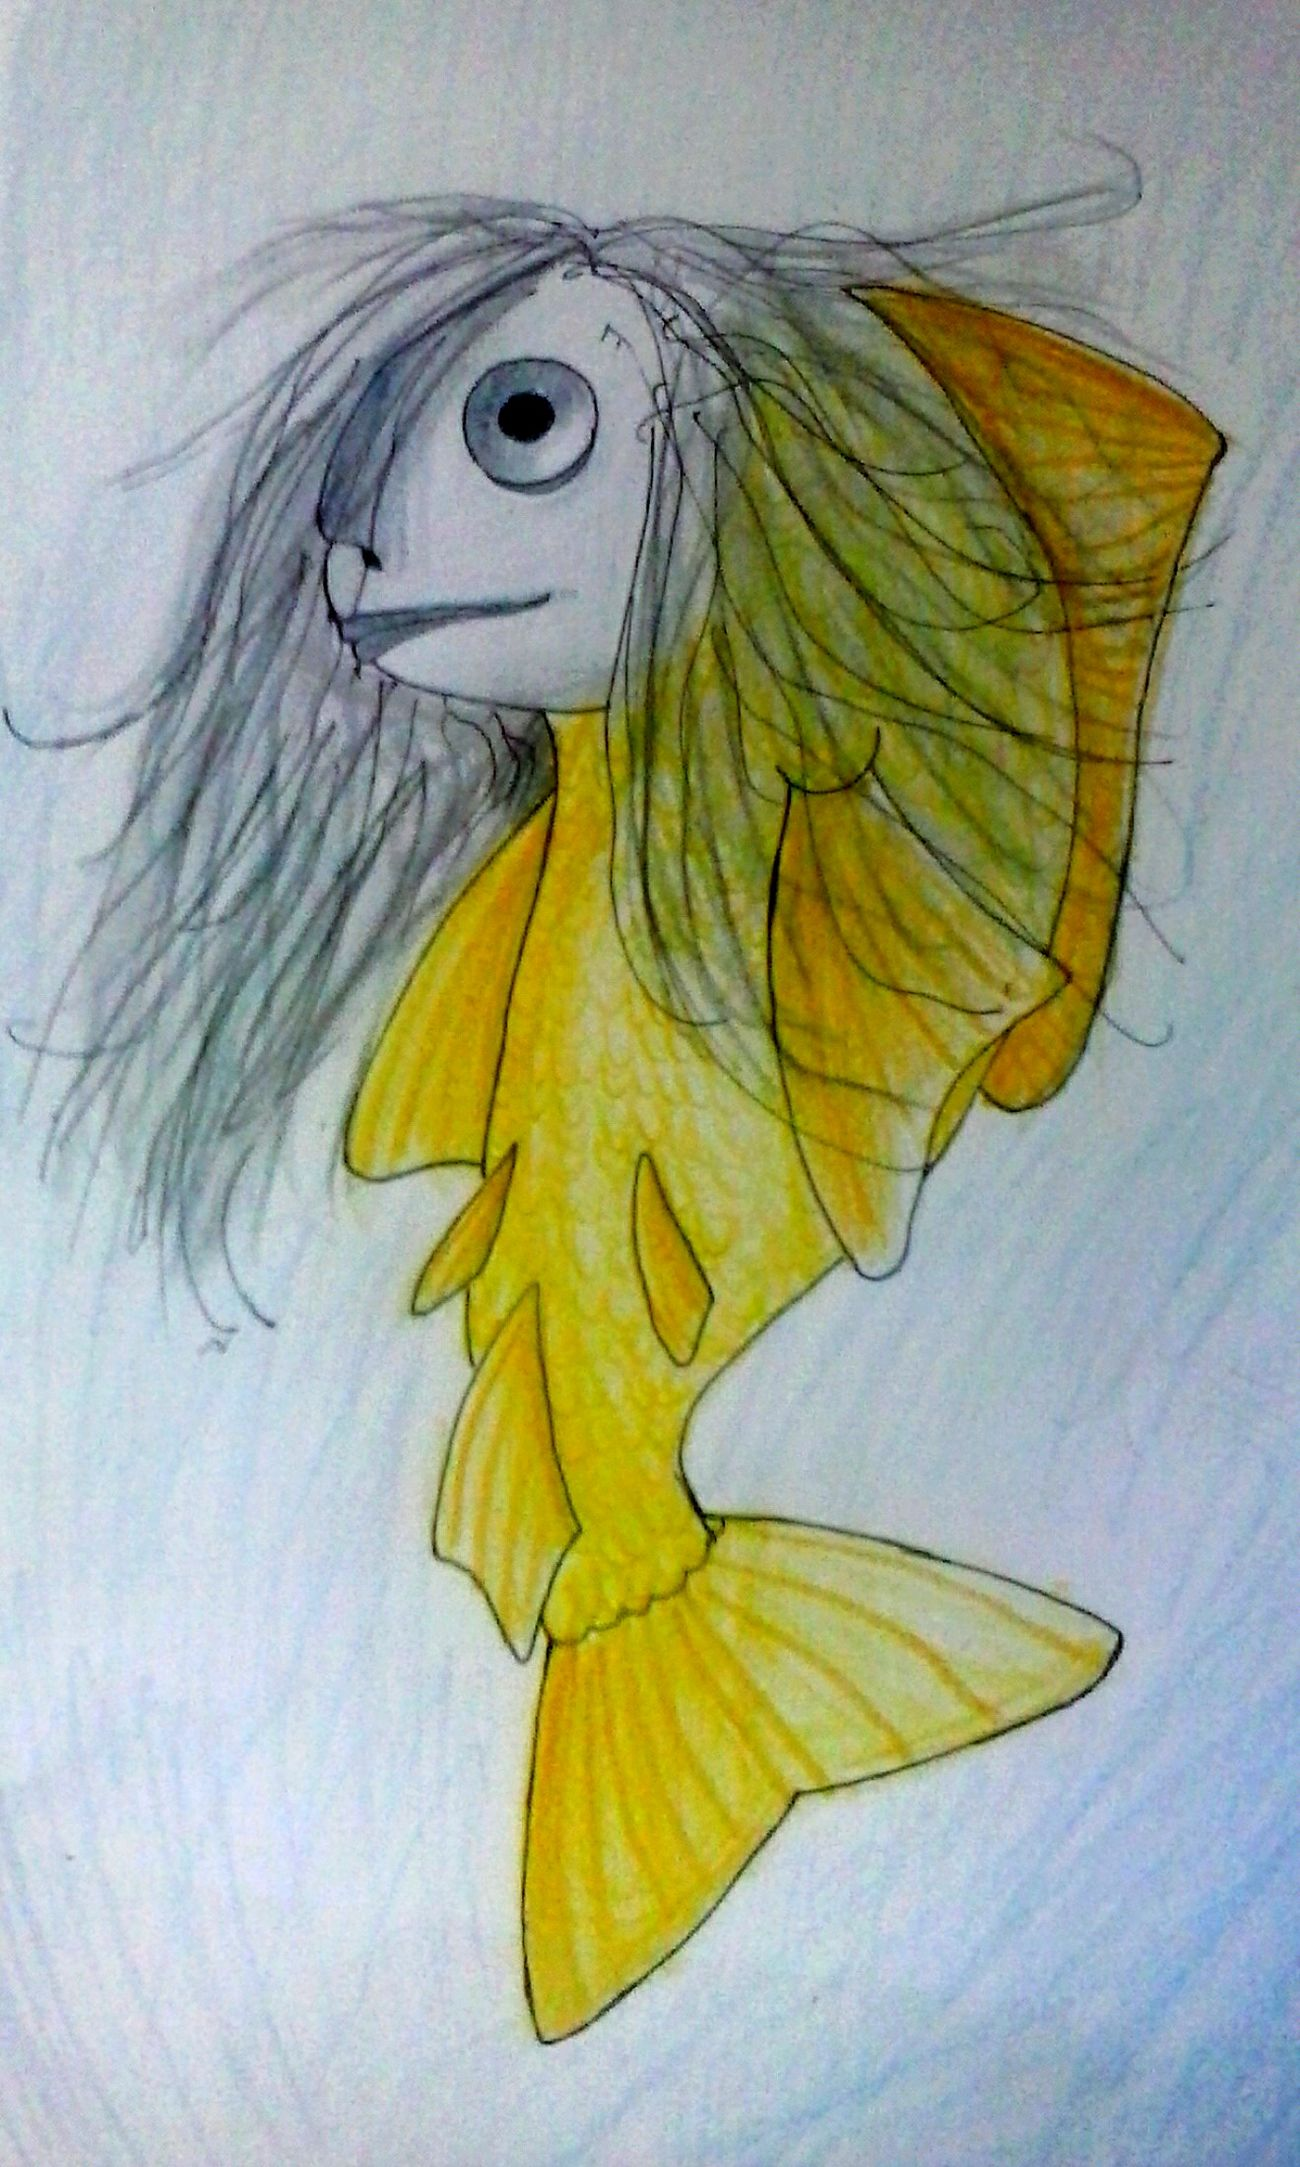 The Japanese Mermaid - Ningyo. Japan Mythology Myth Mermaid Ningyo Fabulous Creatures Sea Creatures Art Drawing Creativity